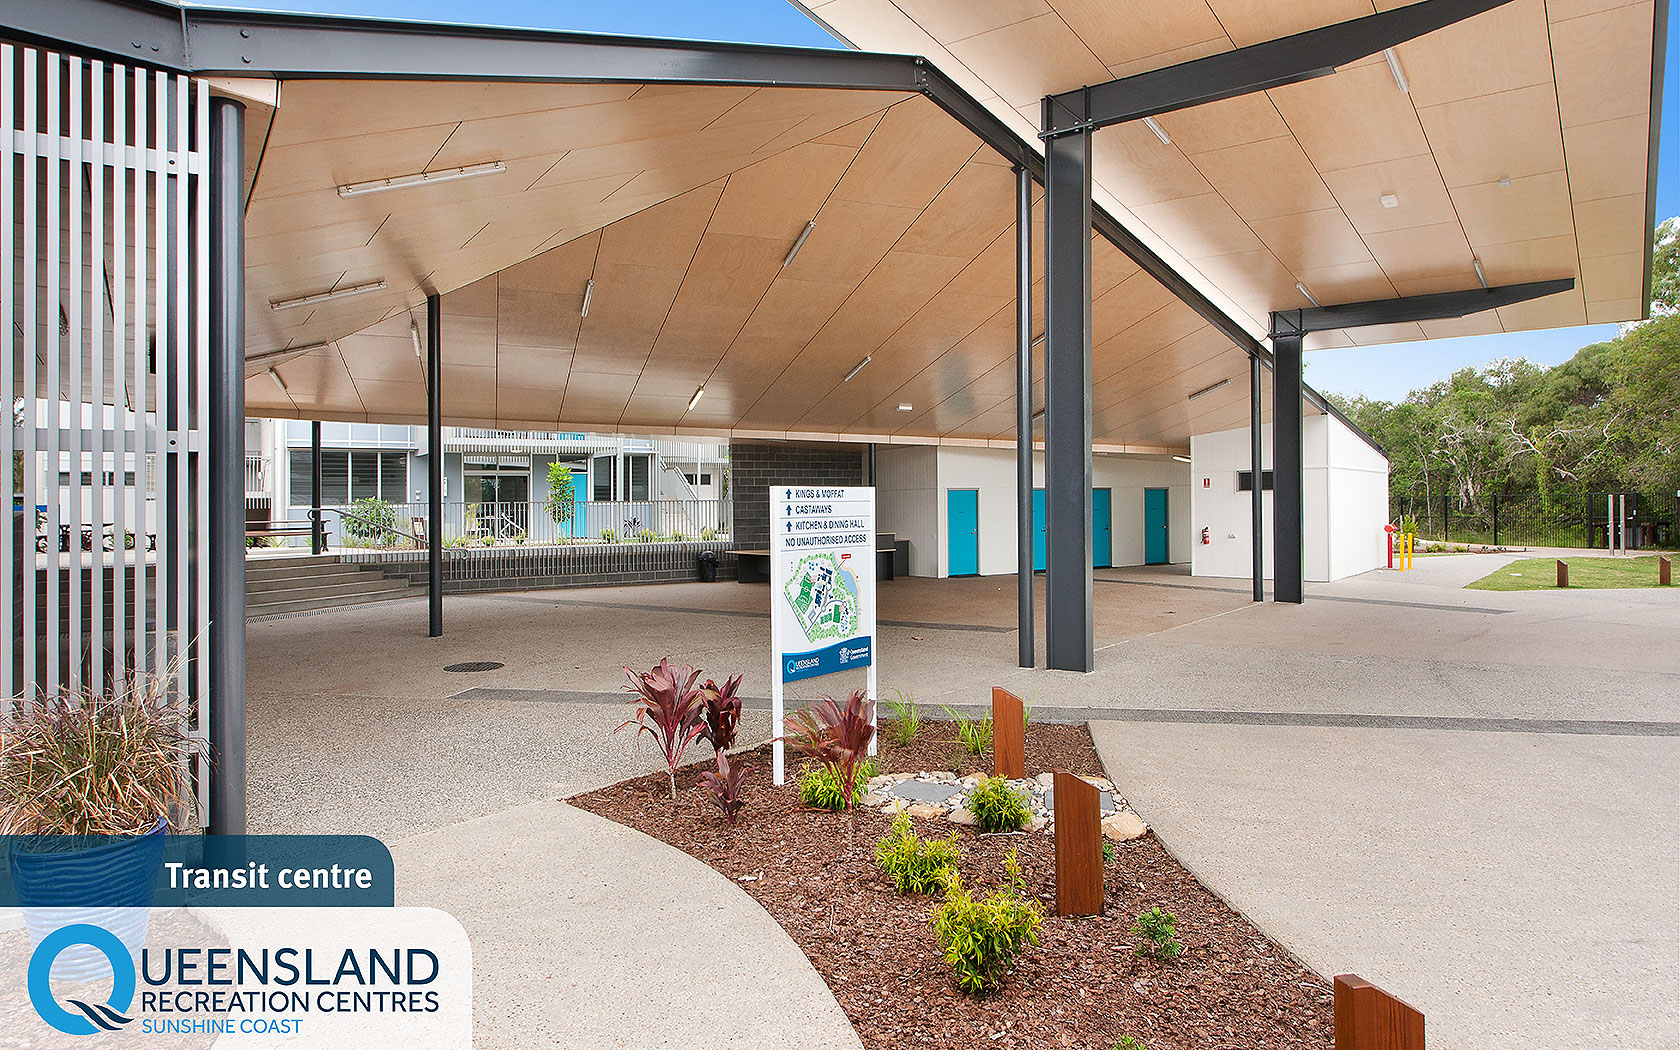 Spacious covered bus drop off area with bathrooms and map of the Sunshine Coast Recreation Centre